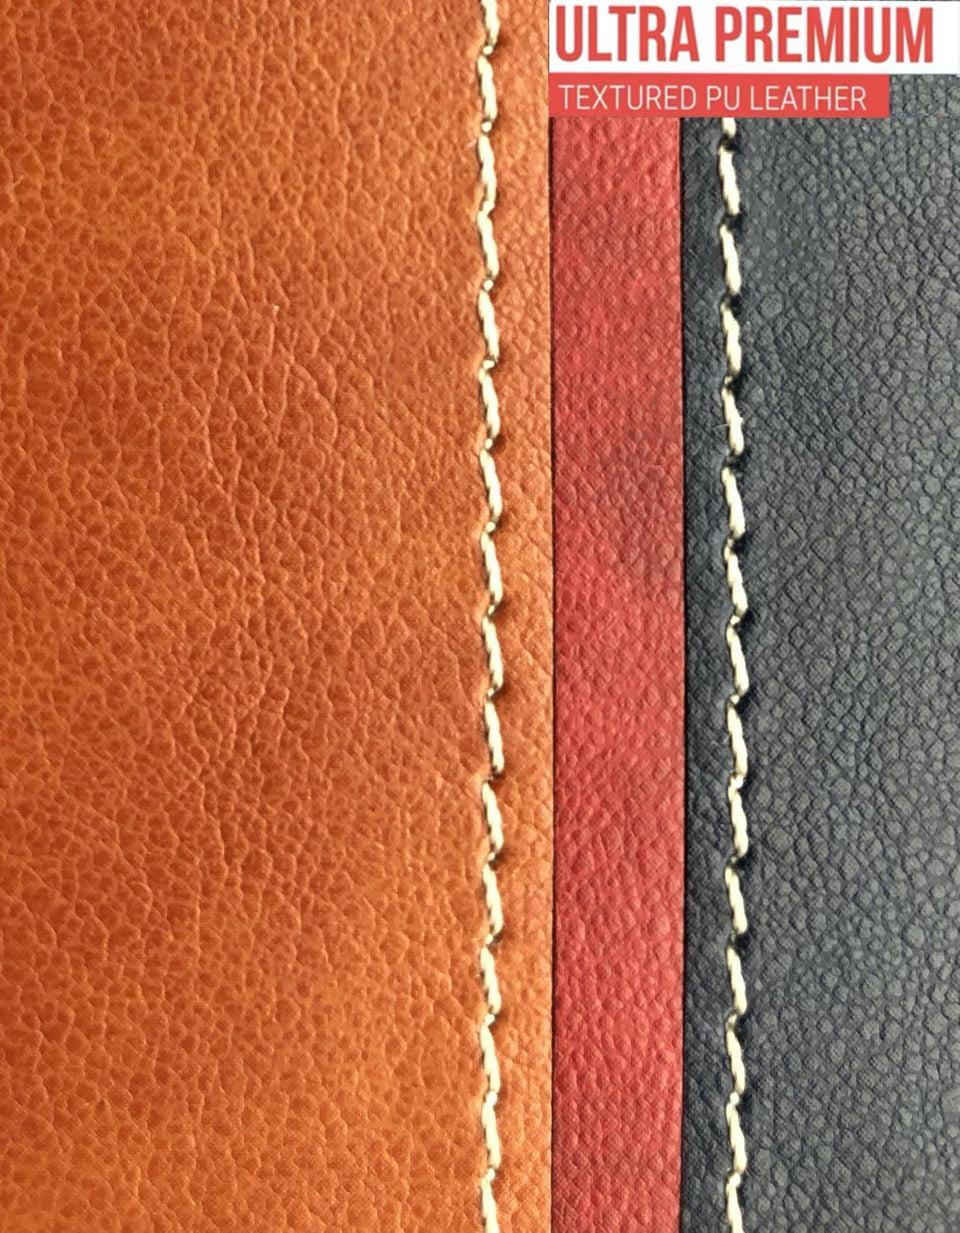 leather quality for iphone x / xs leather case